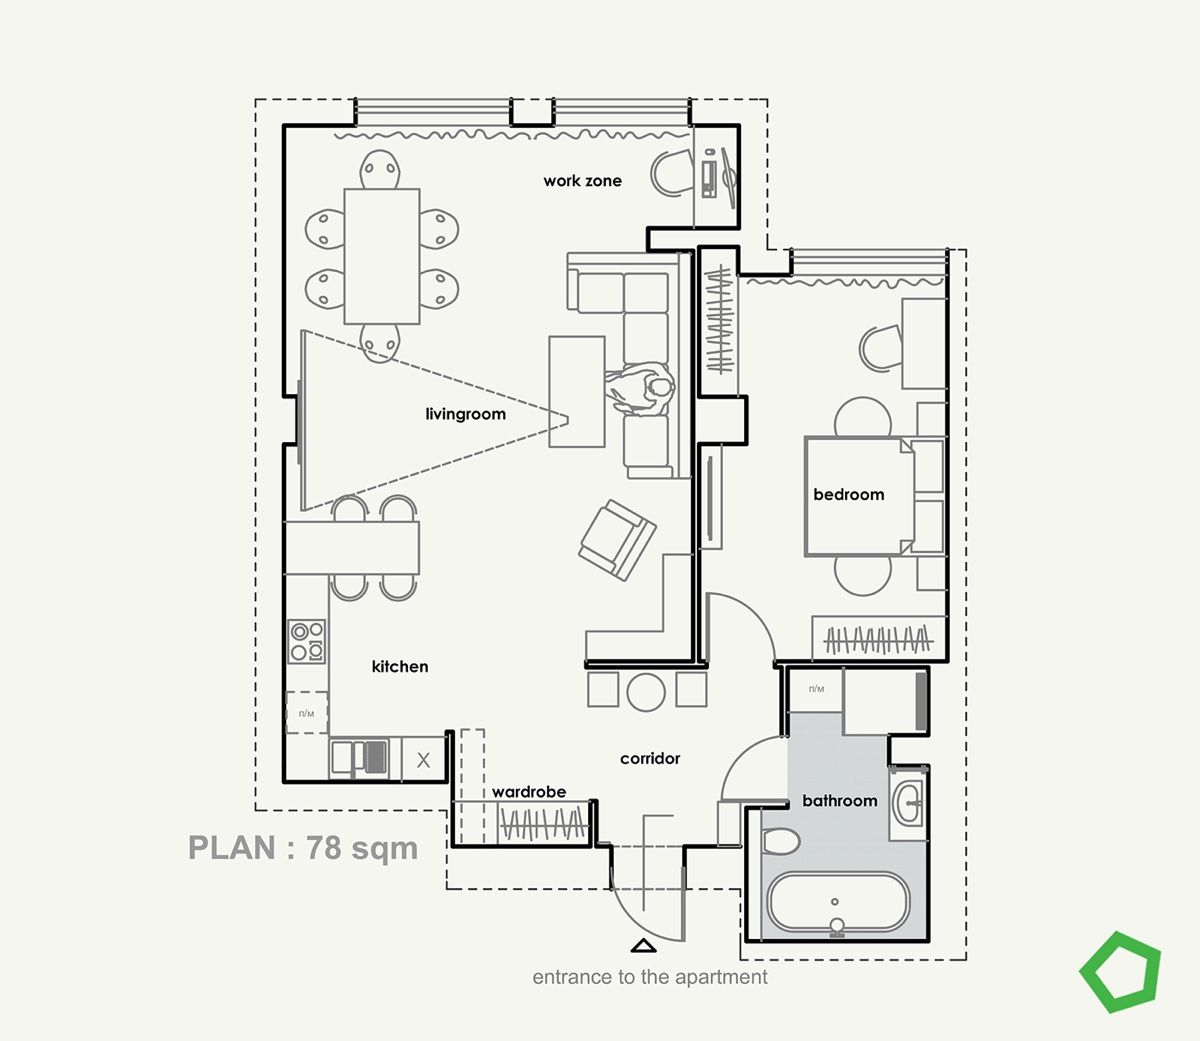 Relaxing Color Schemes In 3 Efficient Single Bedroom Apartments With Floor Plans Relaxing Color Schemes How To Plan Apartment Floor Plans